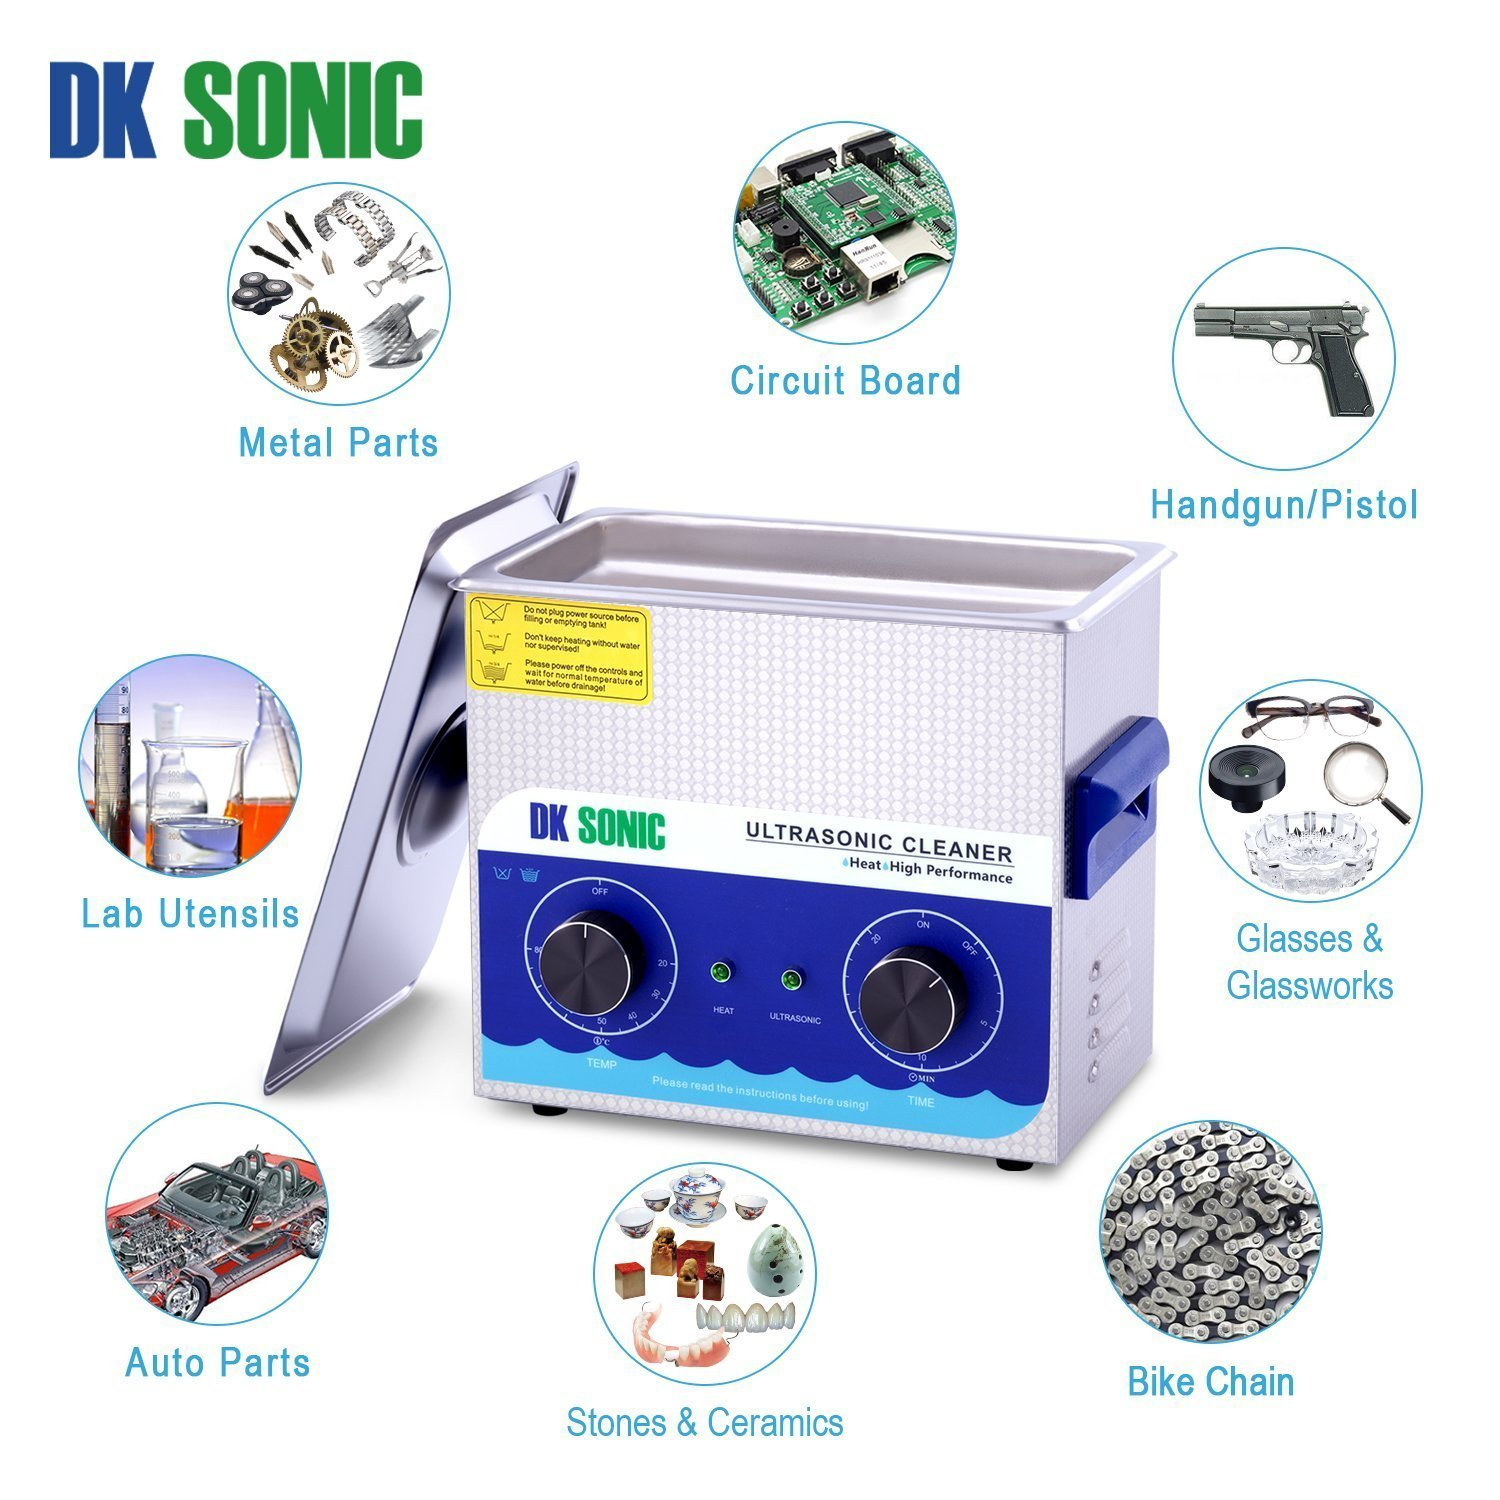 Commercial Ultrasonic Gun Cleaner Heated - DK SONIC 3L 120W Ultrasonic Jewelry Cleaner with Heater Basket for Parts Denture Carburetor Eyeglass Fuel Injector Record Circuit Board Dental 40KHz by DK SONIC (Image #6)